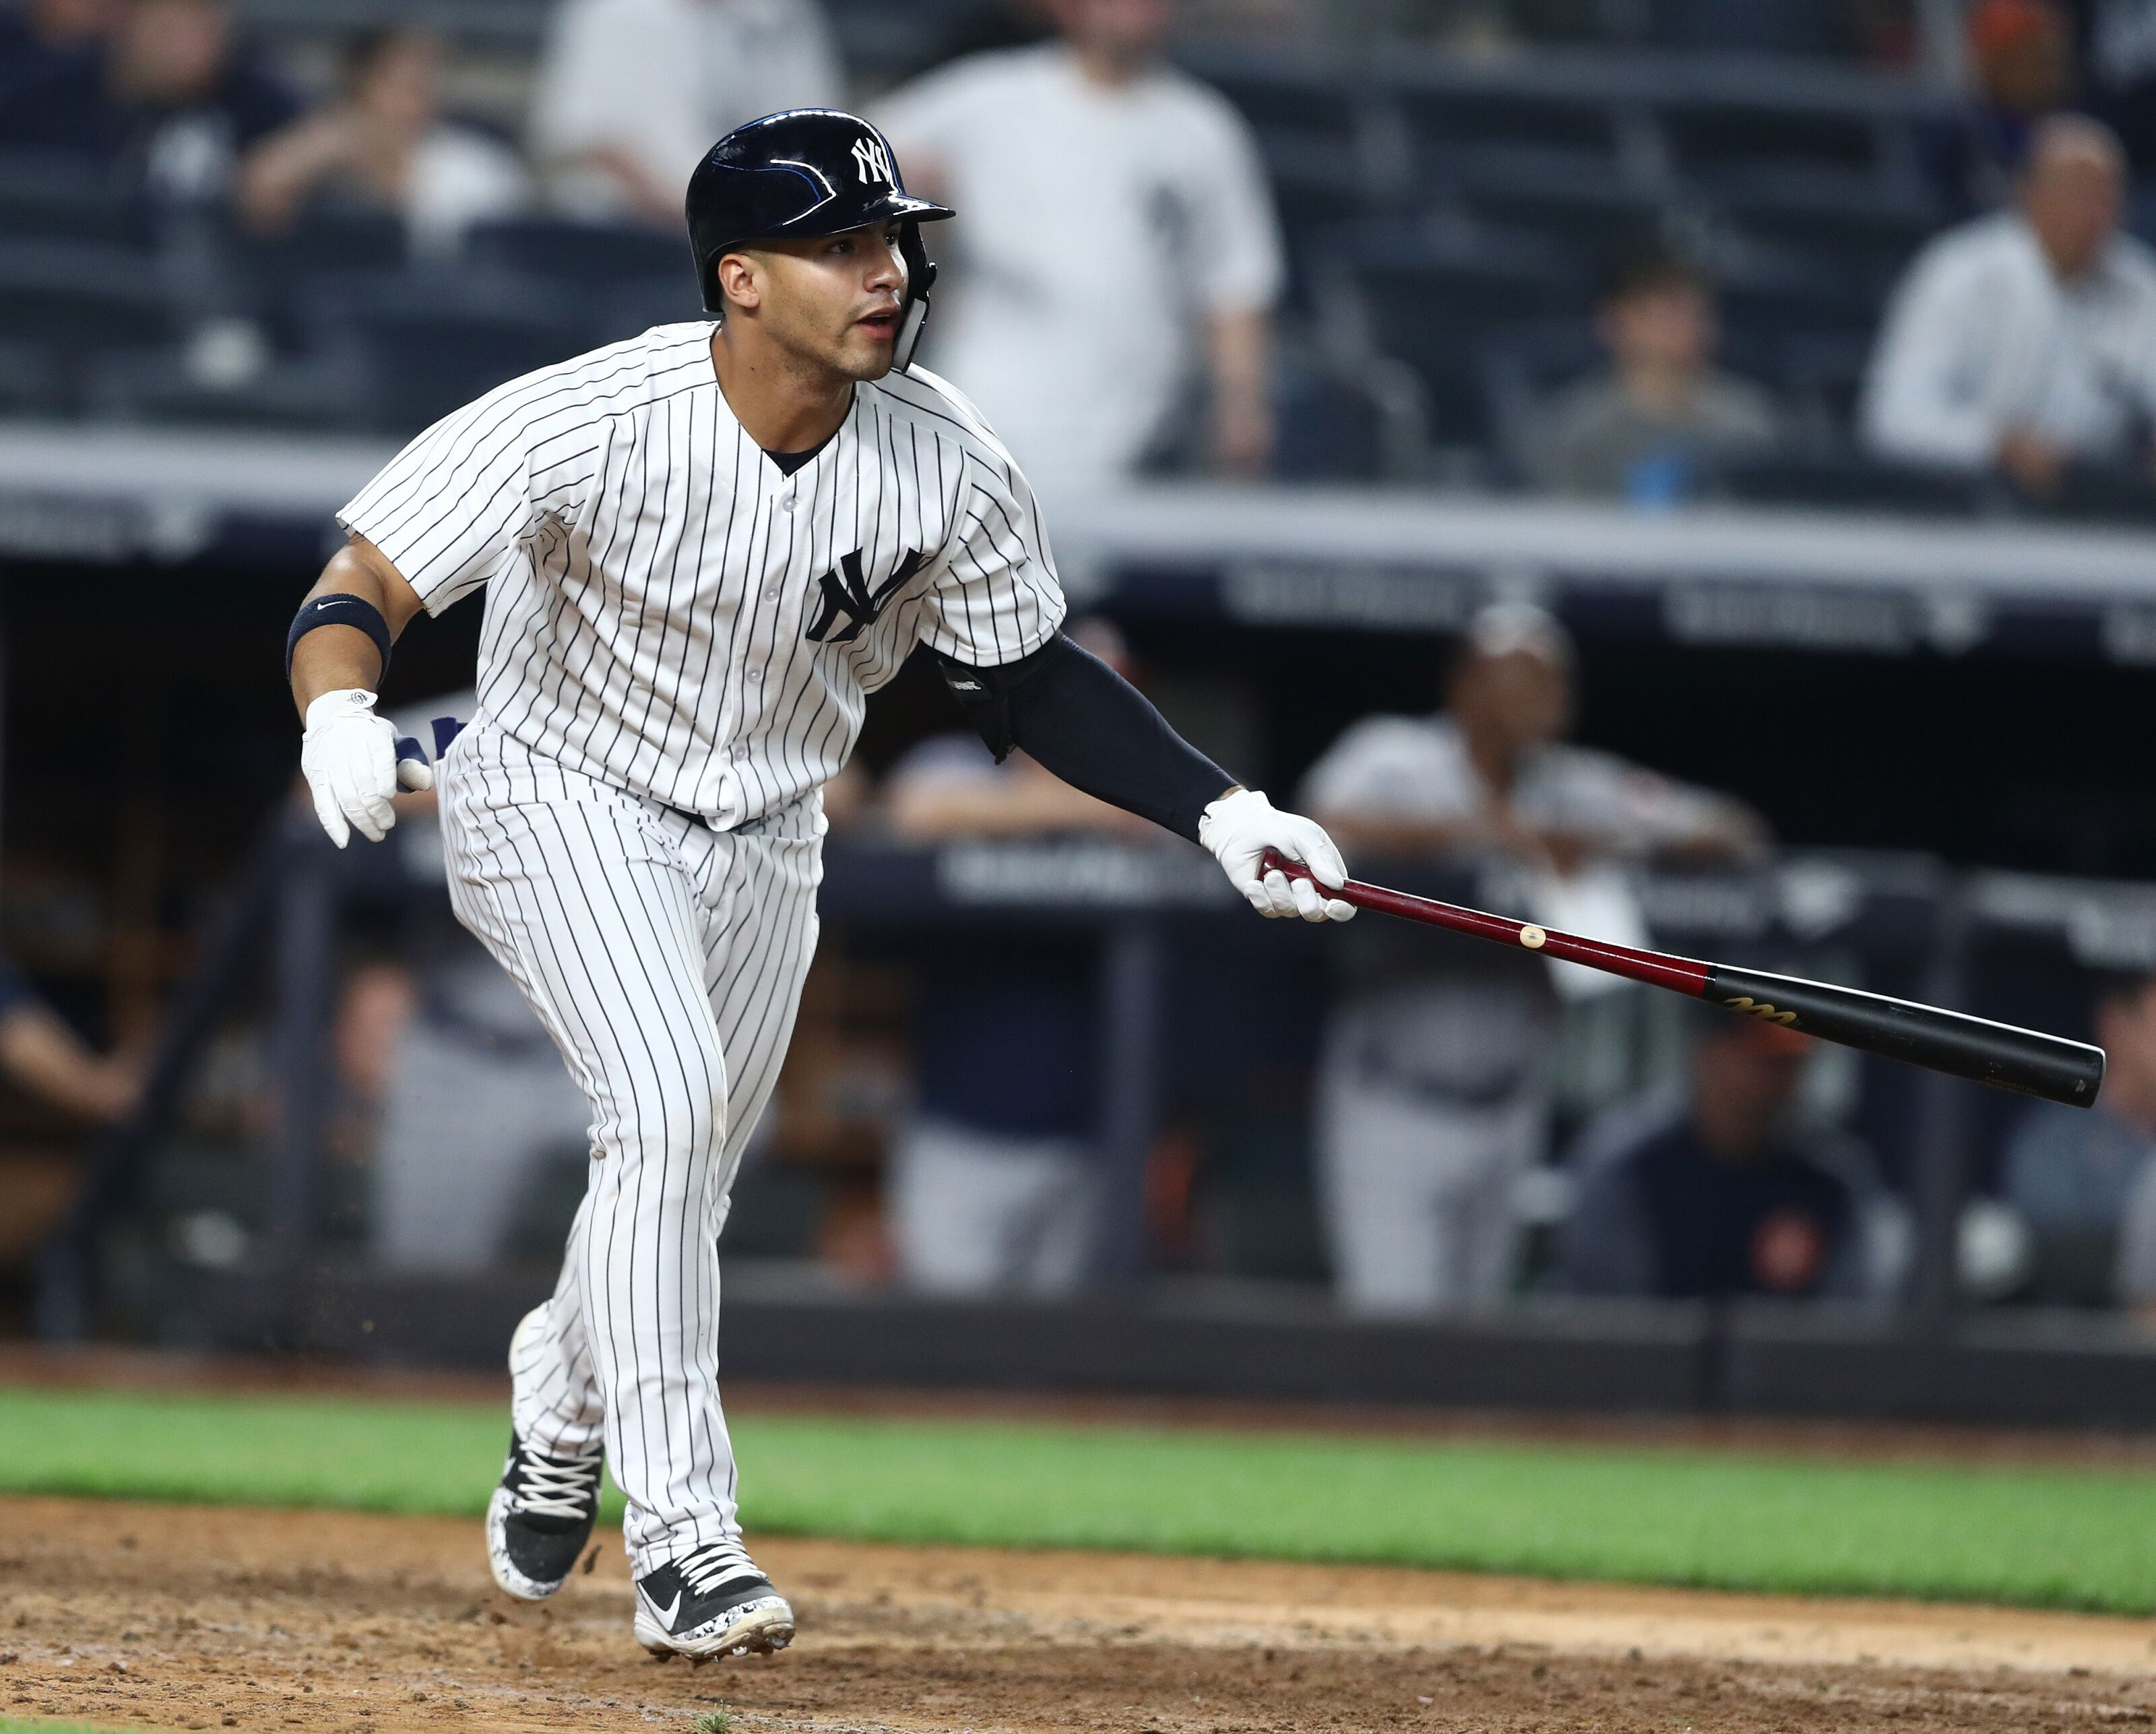 821d11287 Gleyber Torres is the New York Yankees  next superstar